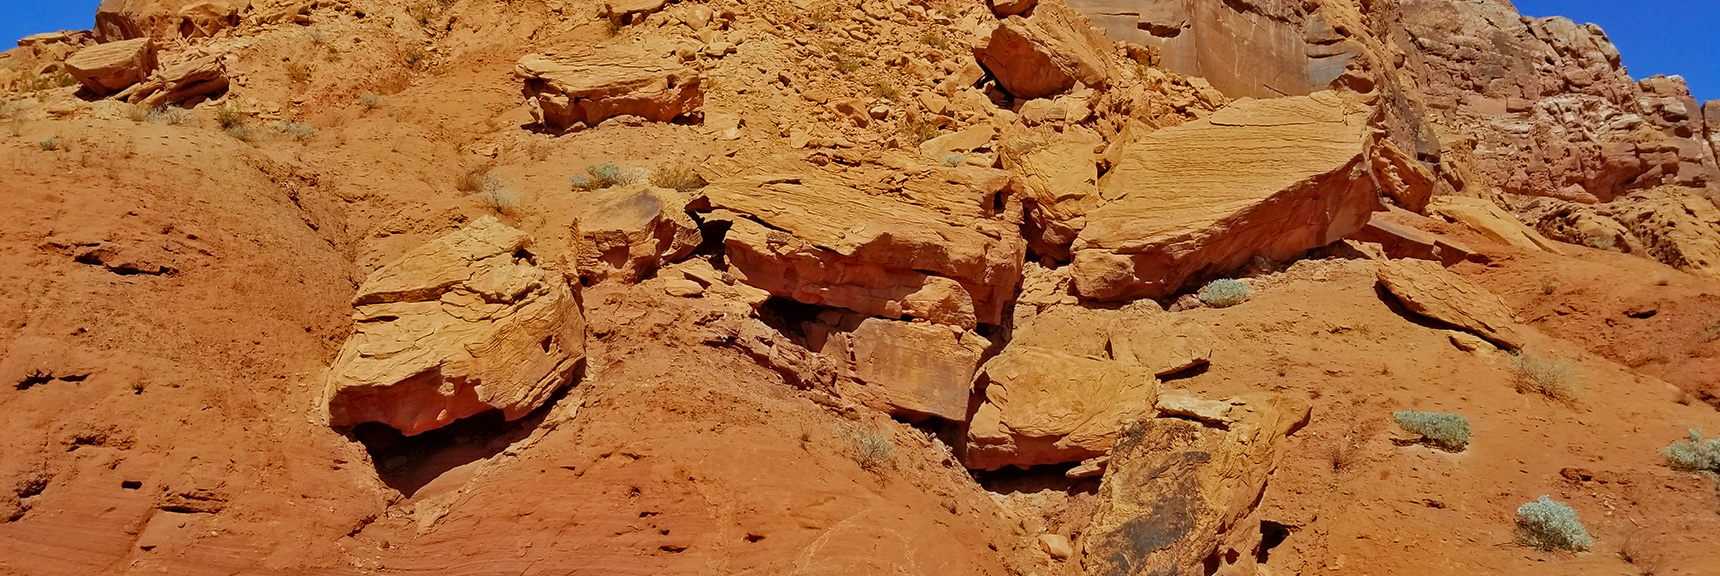 House-Sized Chunks of Red Rock Fallen from the Cliffs Above   Northern Bowl of Fire   Lake Mead National Recreation Area, Nevada